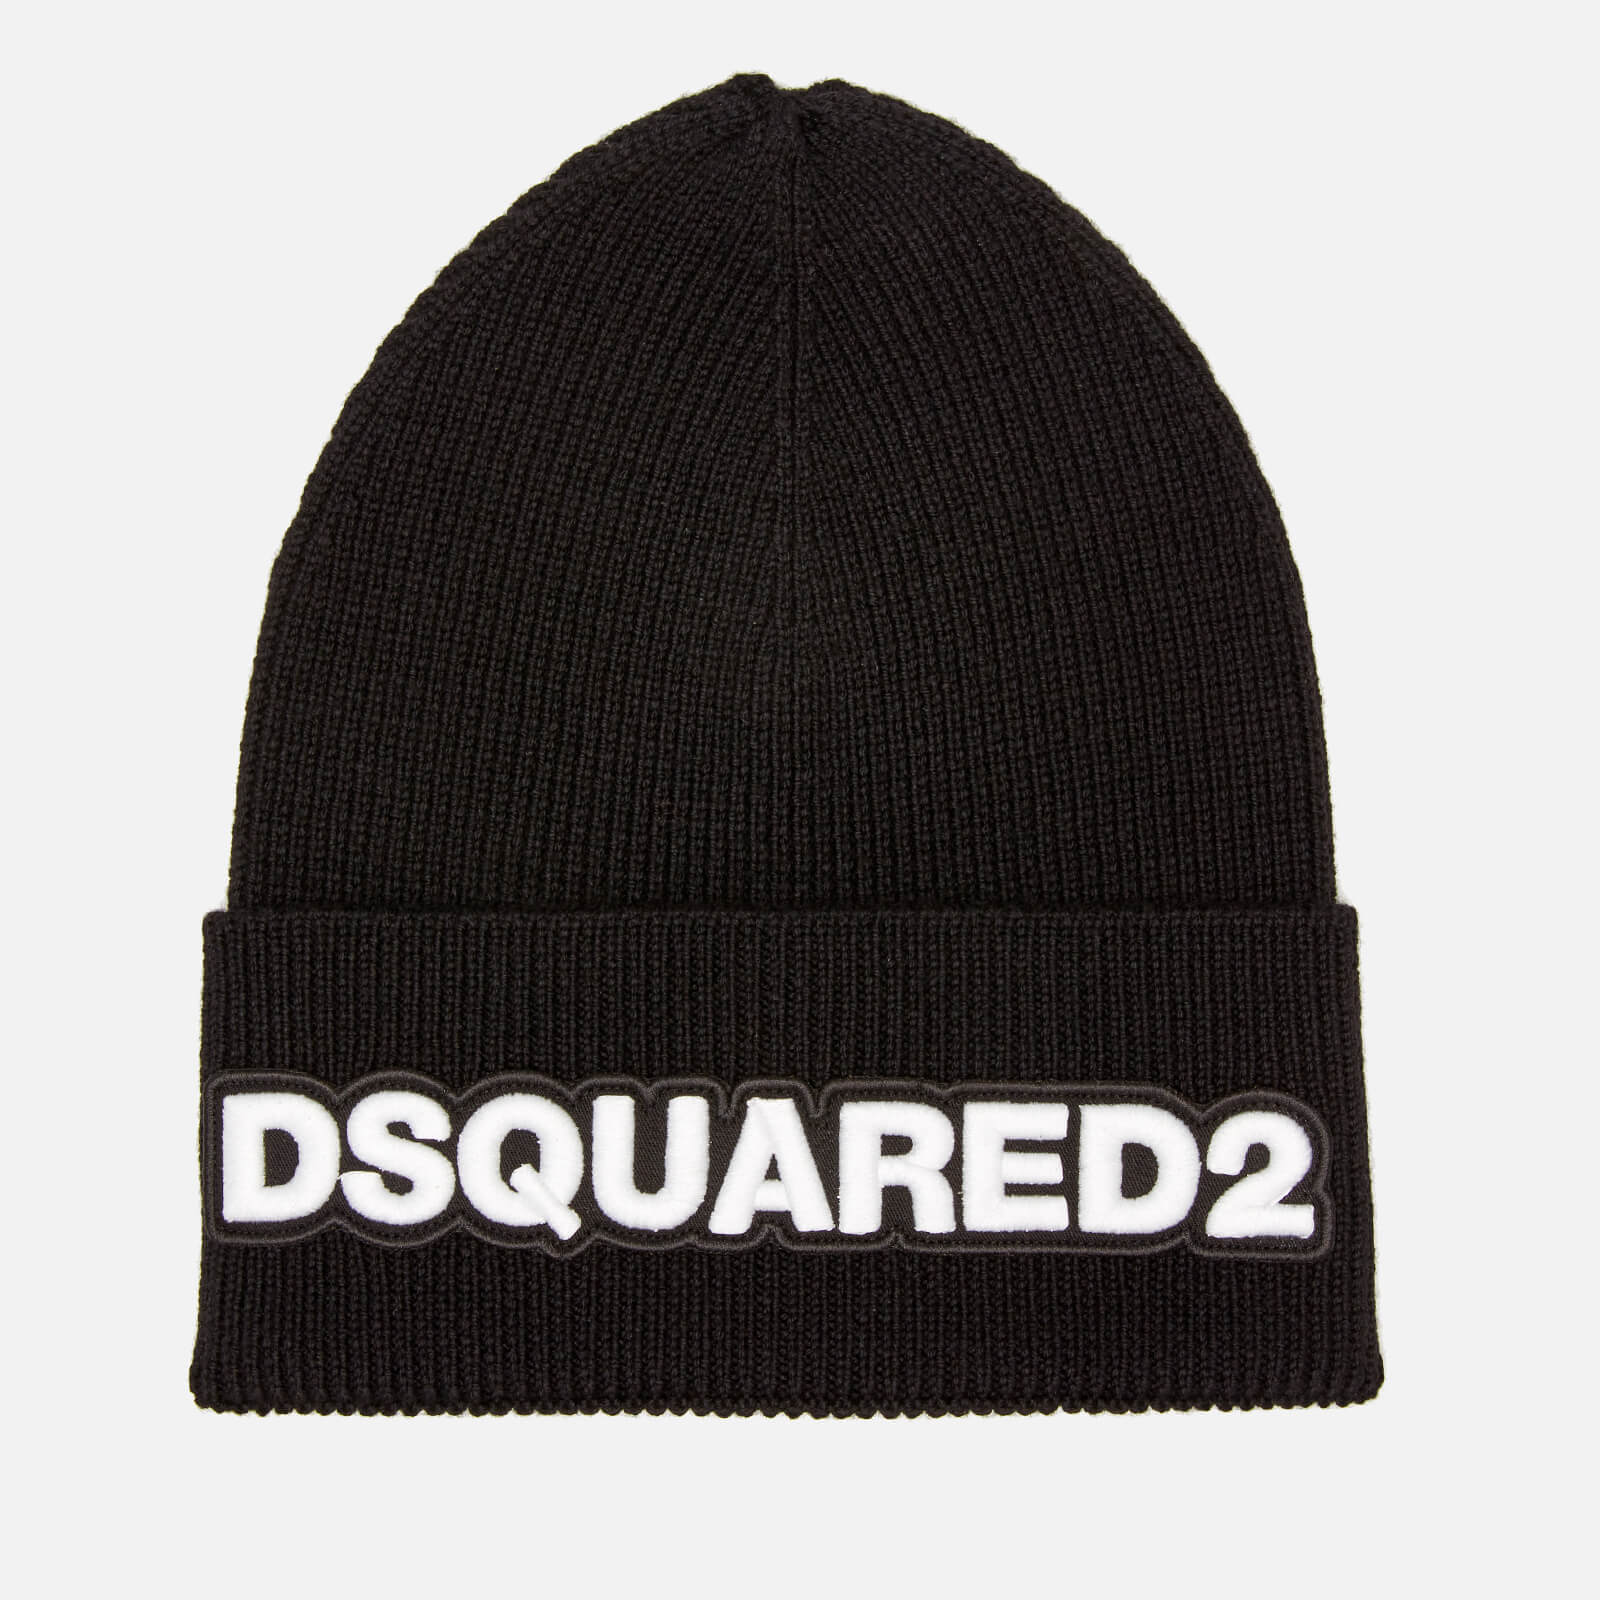 a1a67286ef6ebc Dsquared2 Men's Dsquared Knit Hat - Black/White - Free UK Delivery over £50